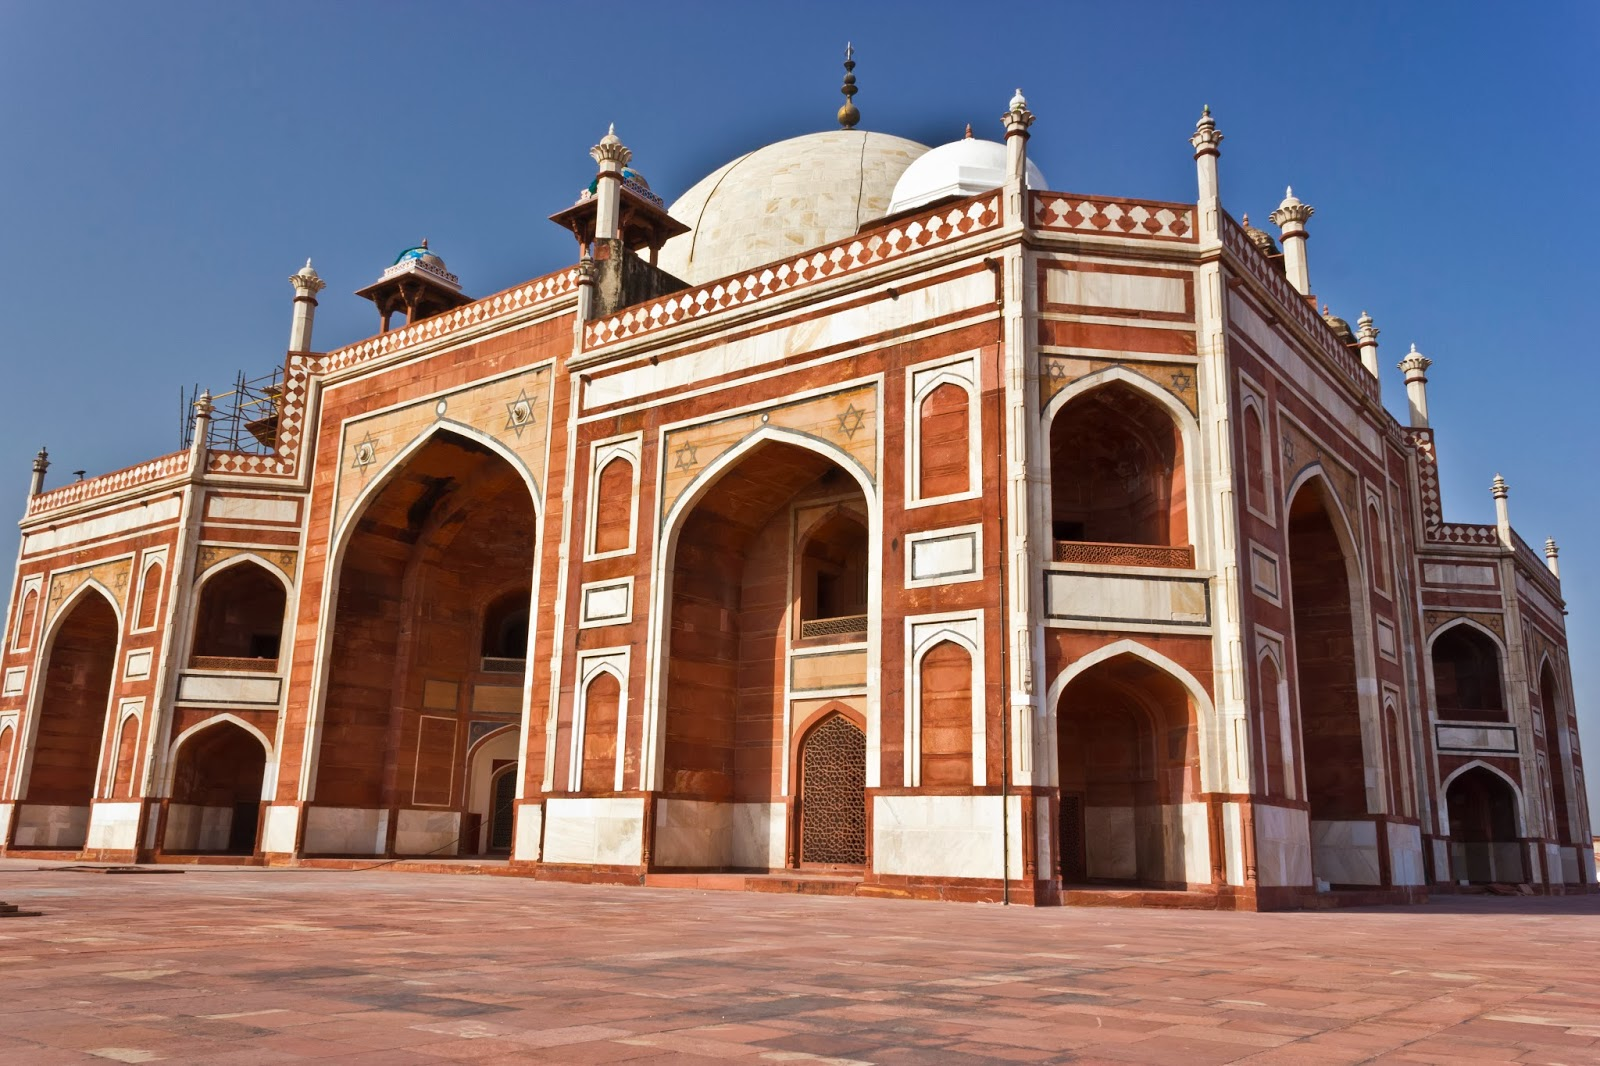 the mughal architecture One of the important features of mughal architecture is reflected at fatehpur sikri (near agra) where the arch of buland danvaza is about 41 metre high and is perhaps the most imposing gateway in the world.